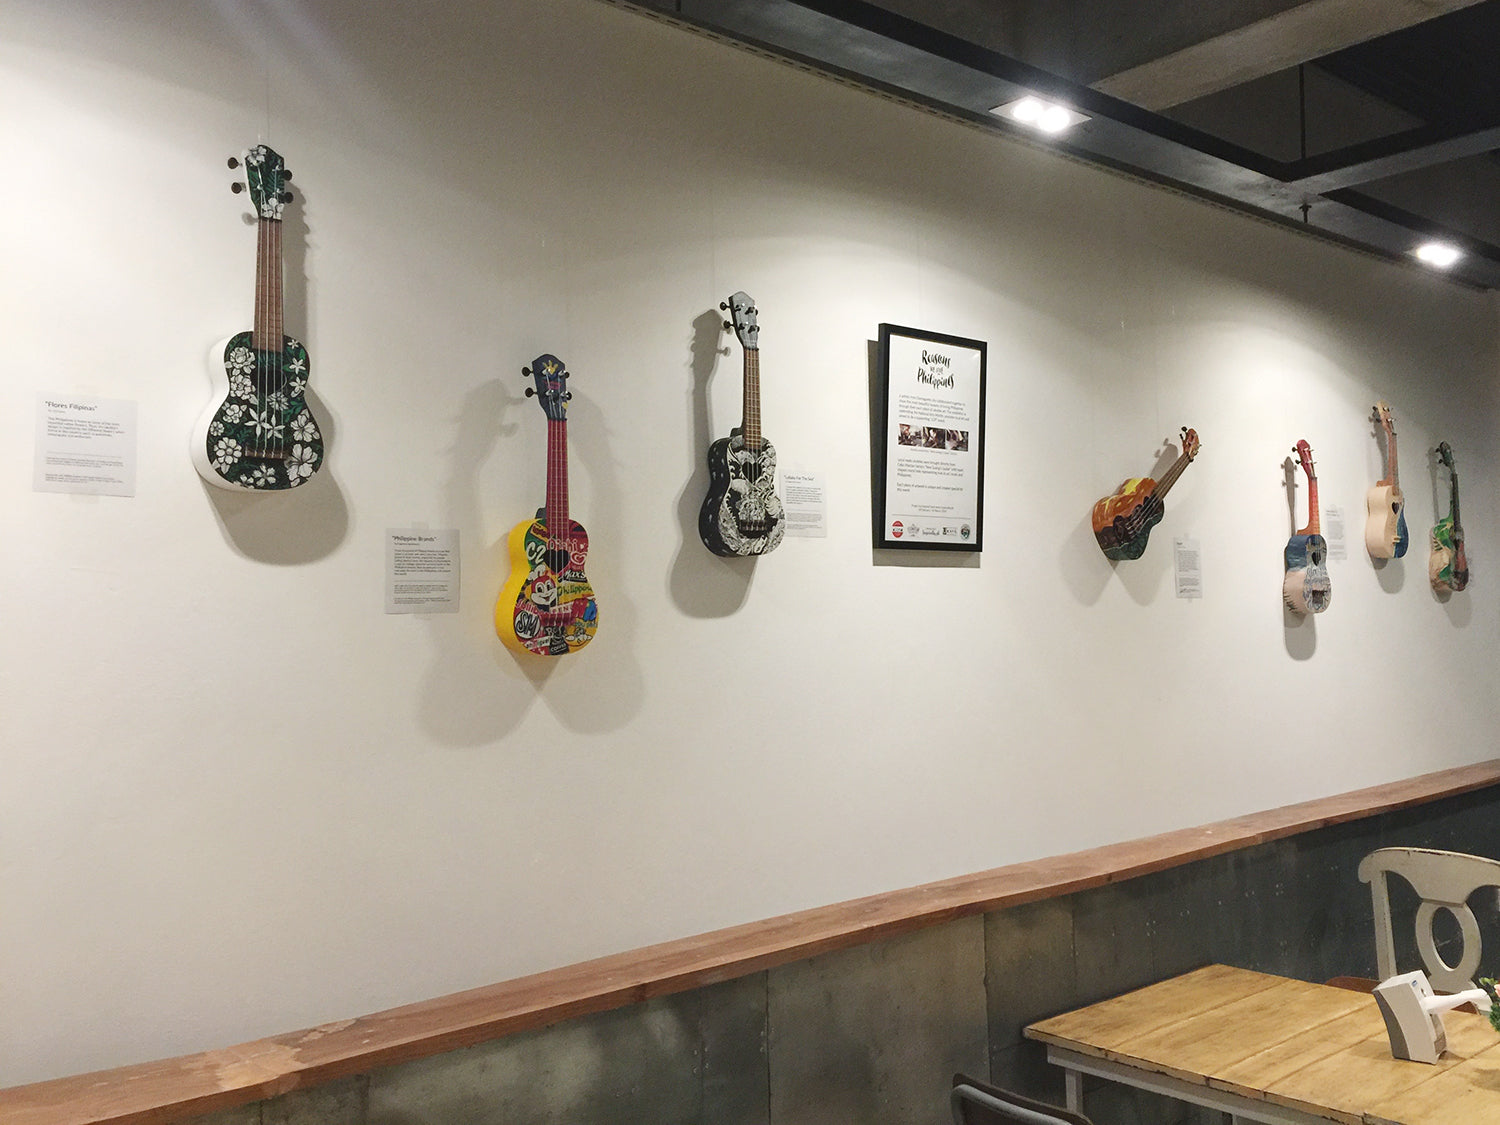 Dumaguete Philippines artist collaboration ukulele drawing exhibition LCP support